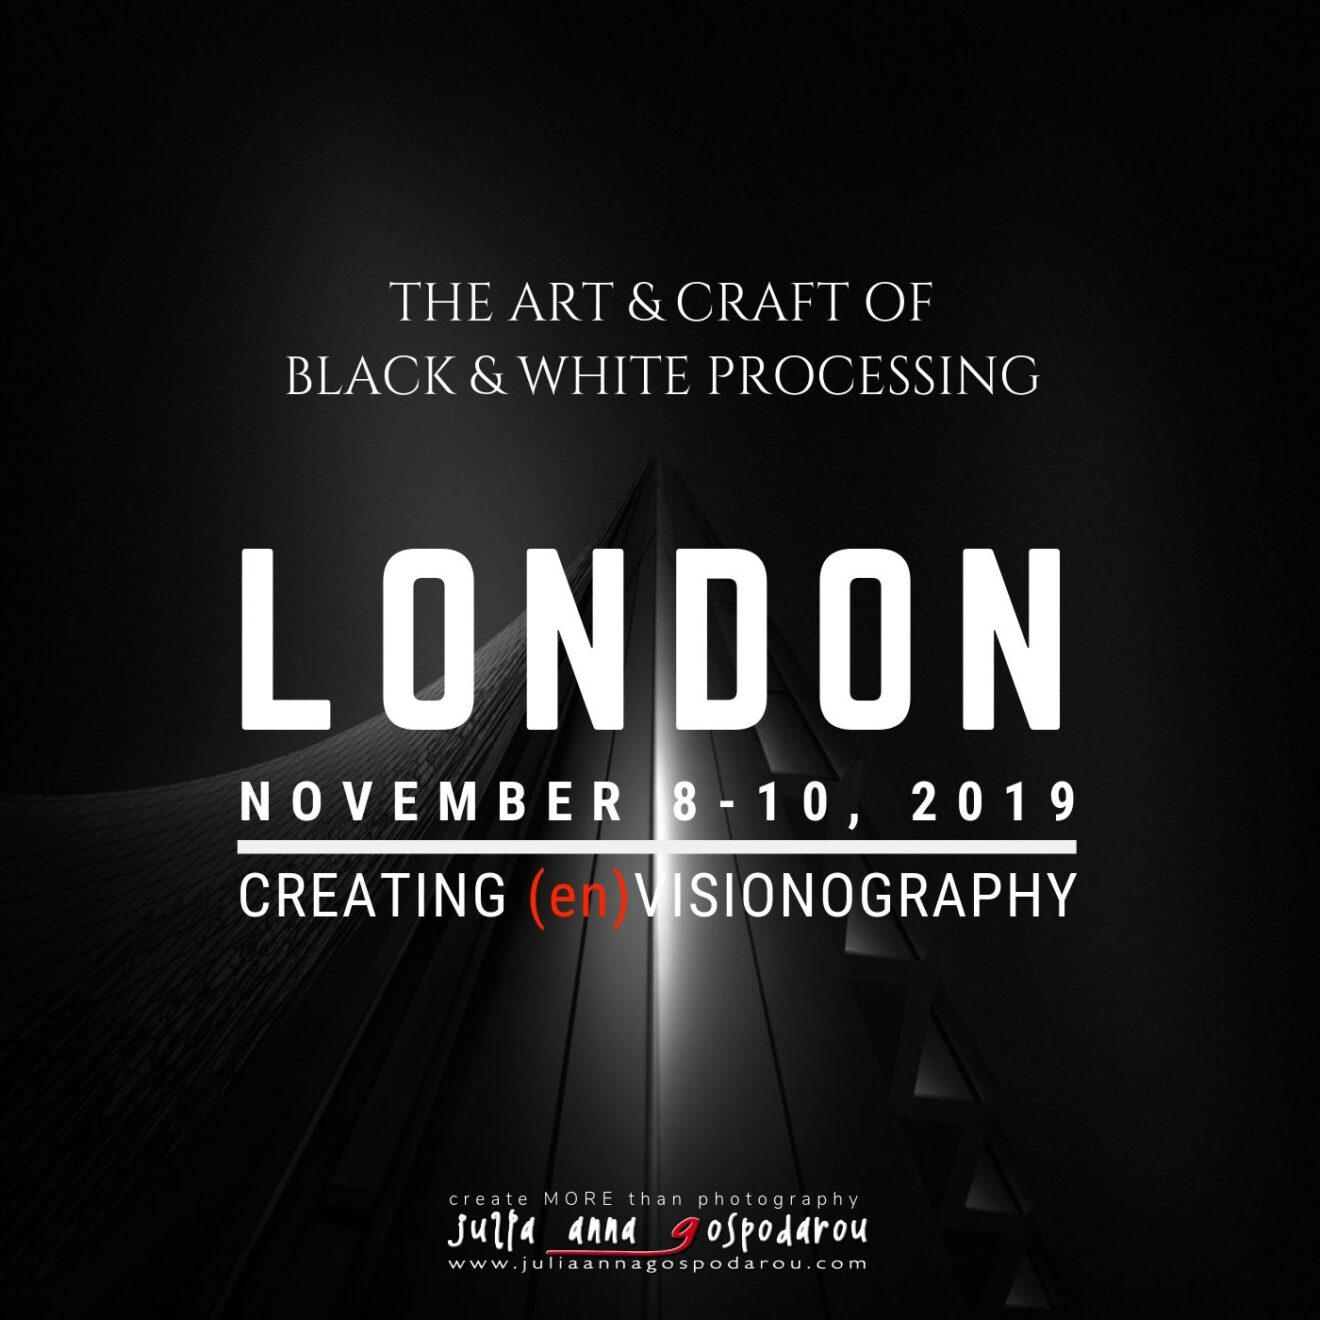 london workshop 2019